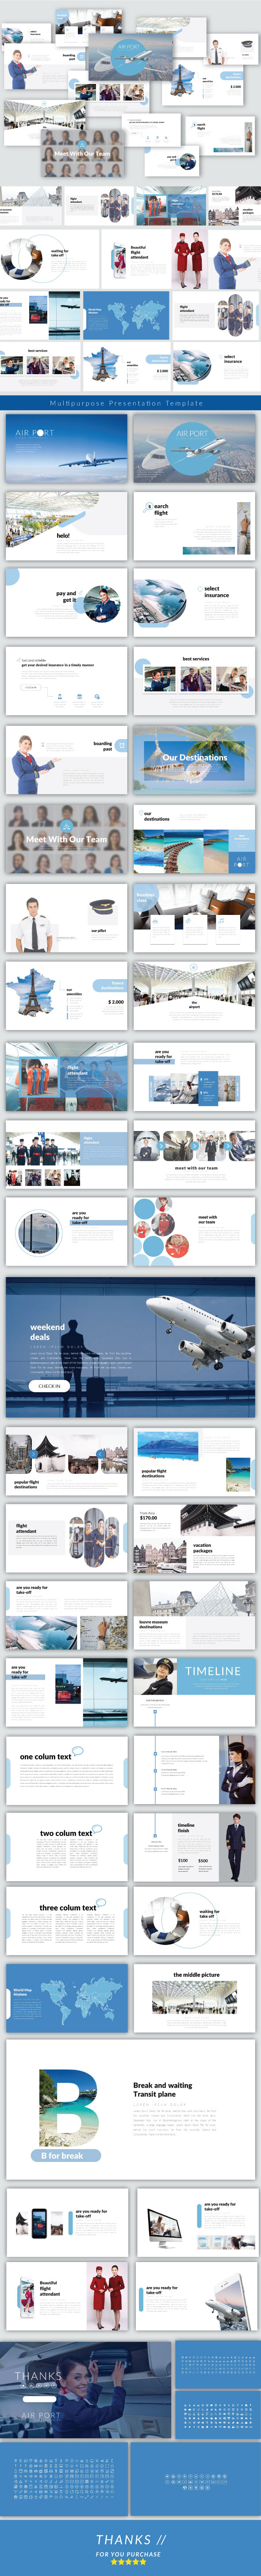 Airport - Keynote Presentation Templates - Business Keynote Templates